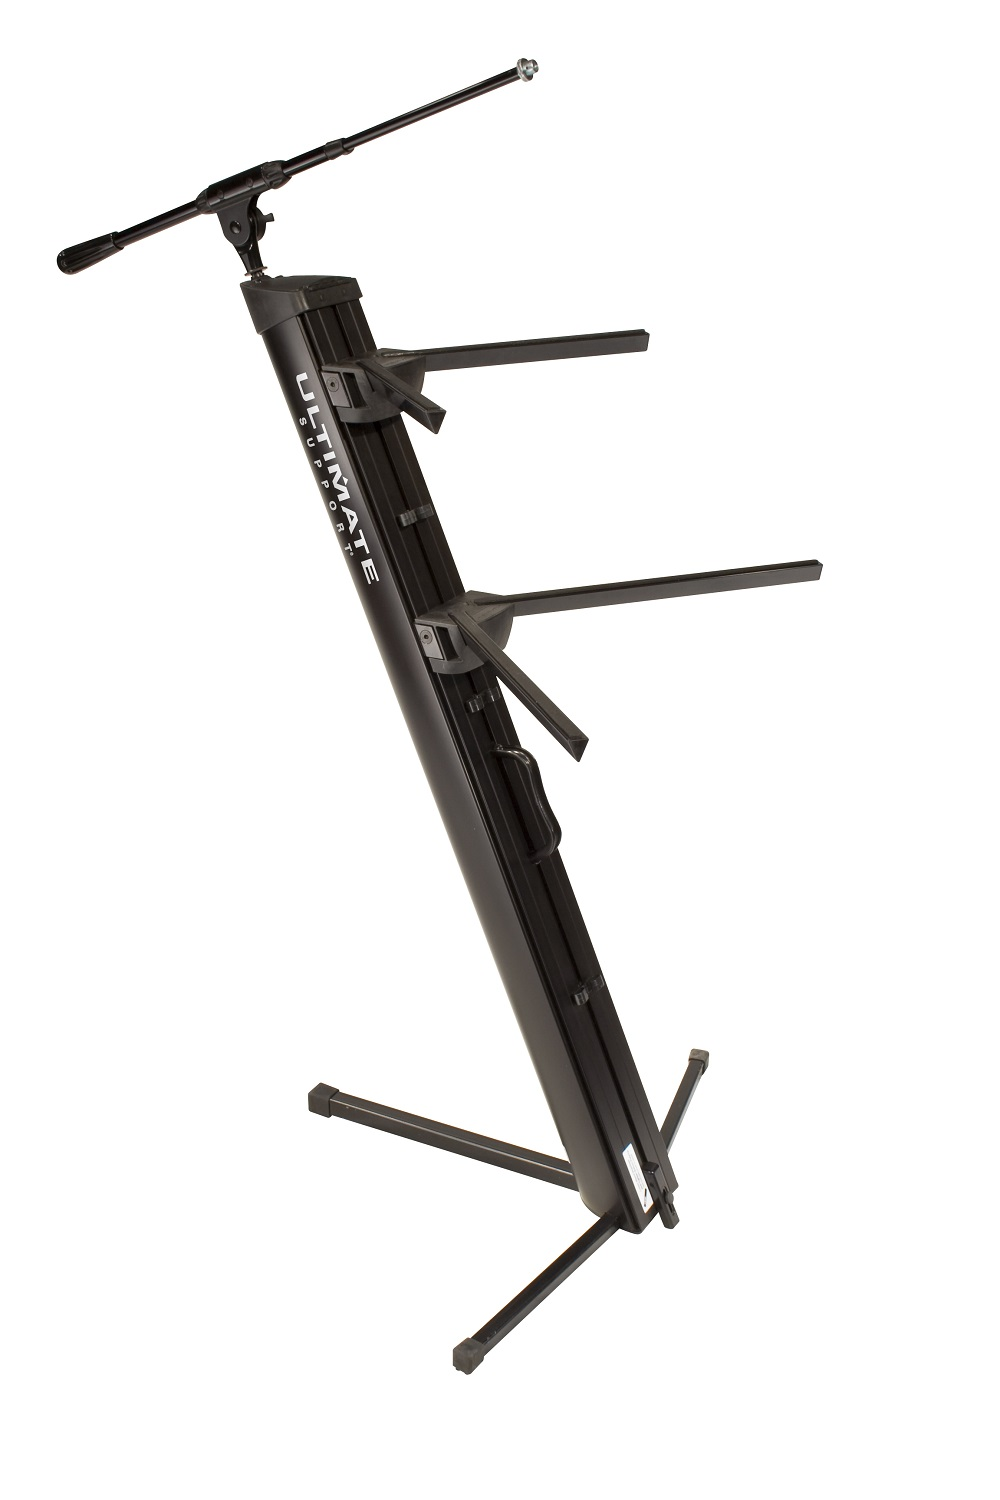 Ultimate Support Apex Ax 48 Pro Plus Two Tier Portable